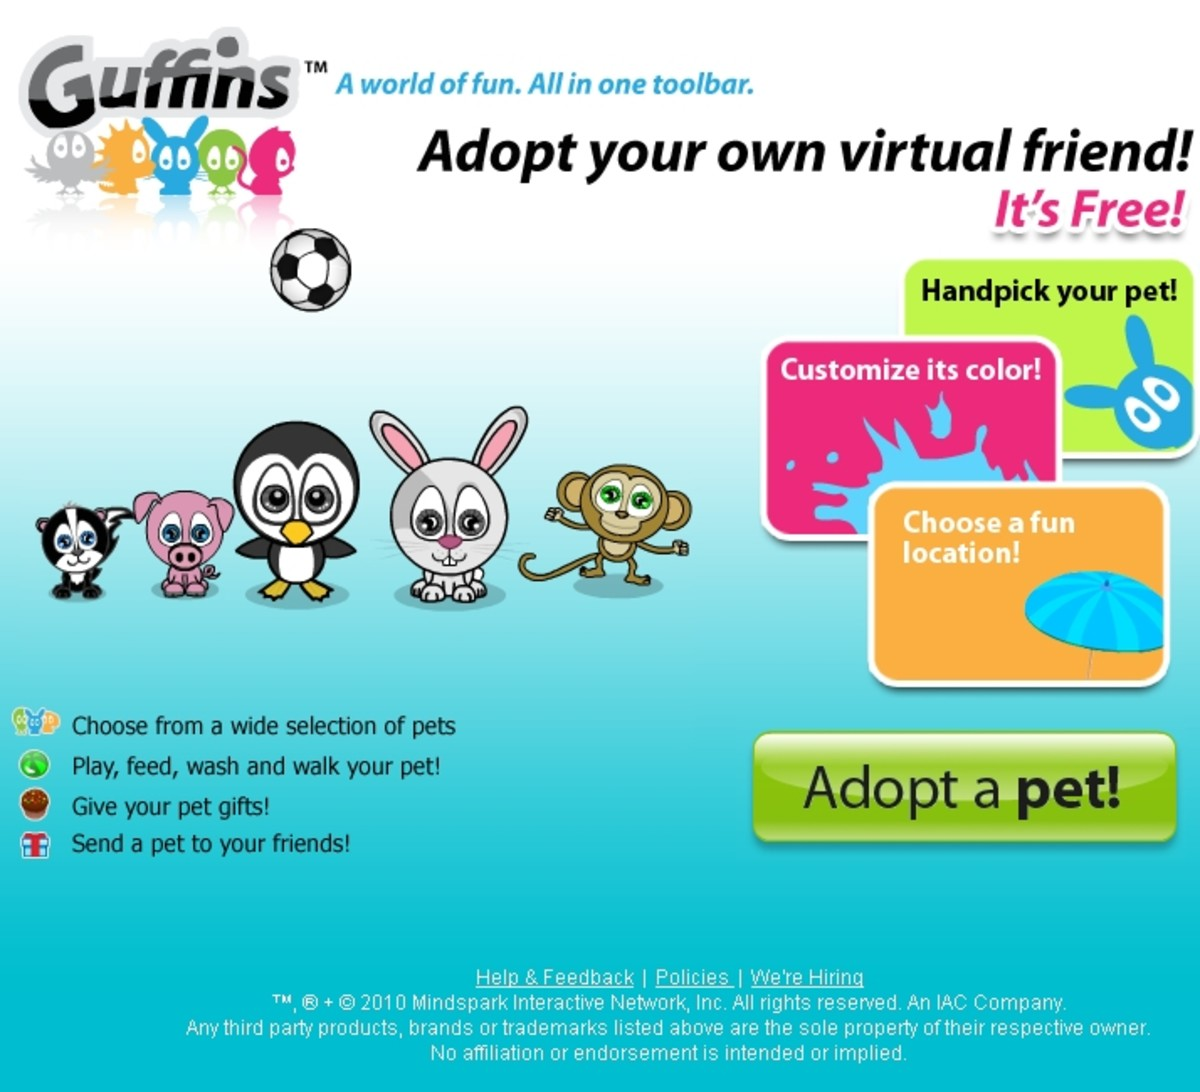 Guffins: Adopt Your Own Virtual Pet